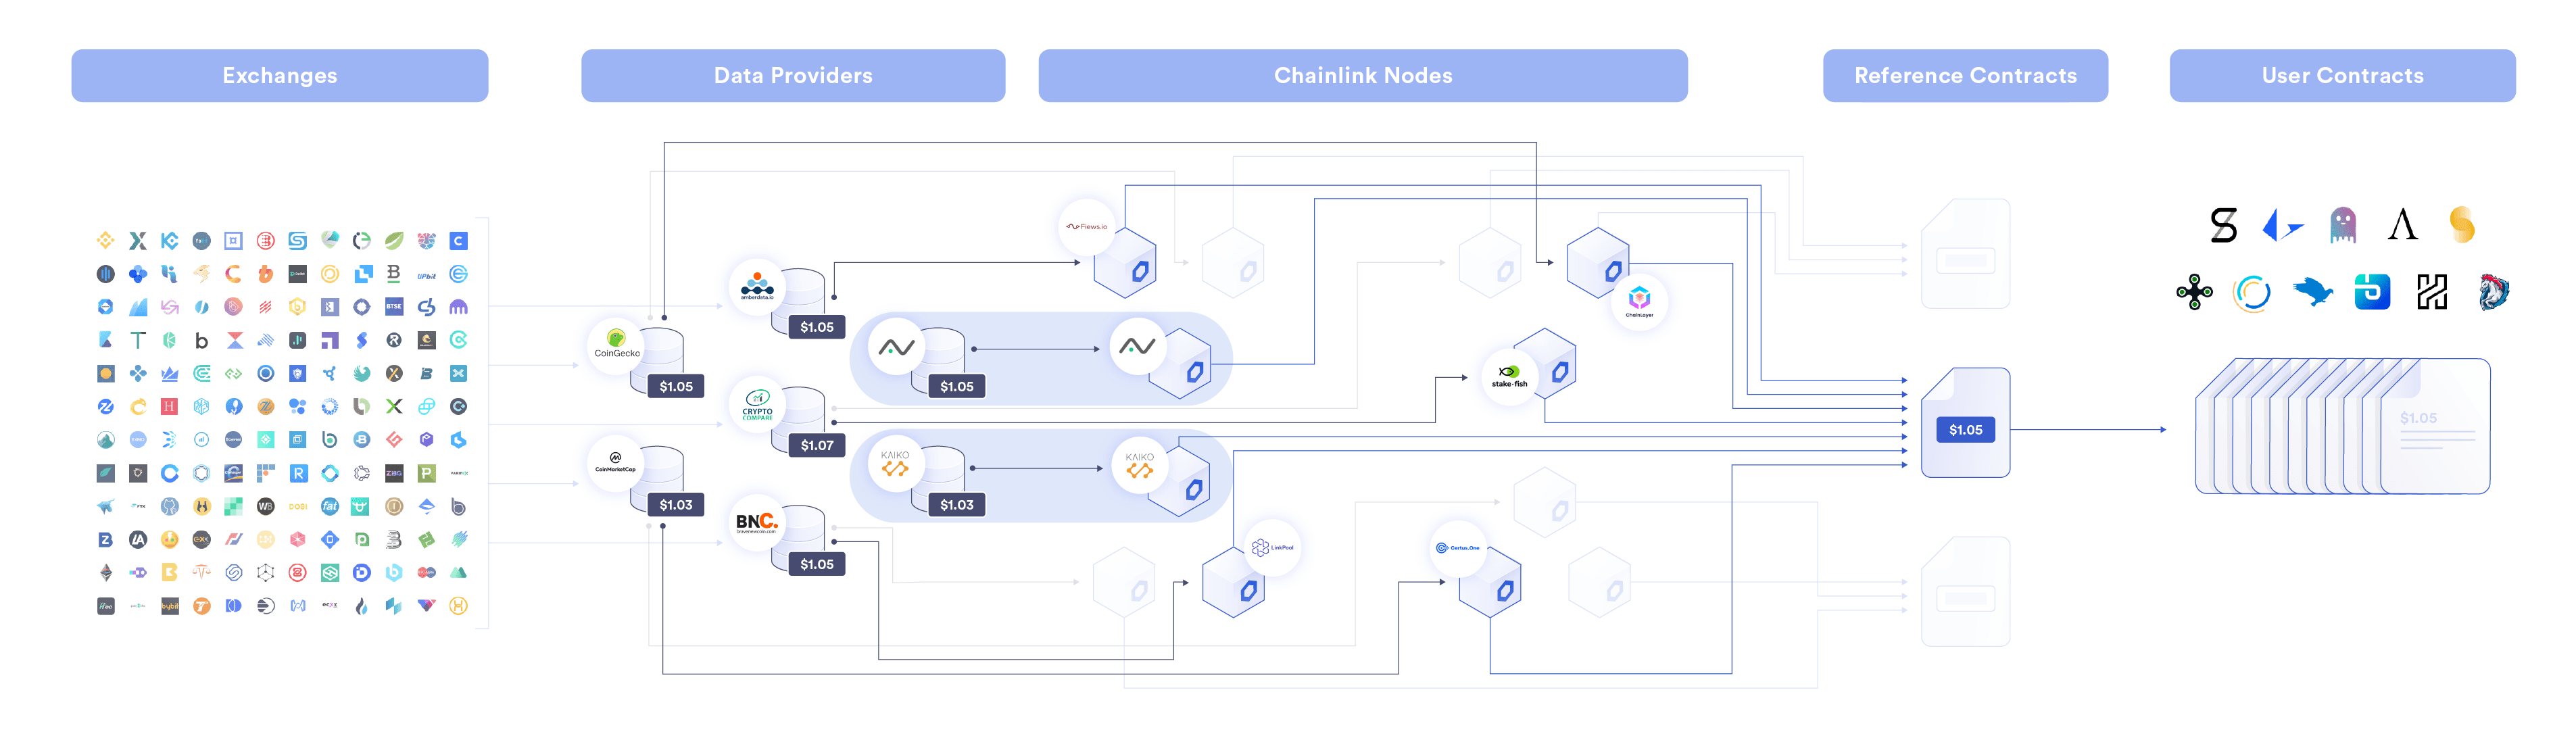 Infographic Explaining Oracles: The Complex Relation Between Sources, Node, Transmitter And Receiver (Source: Chainlink Official Website)